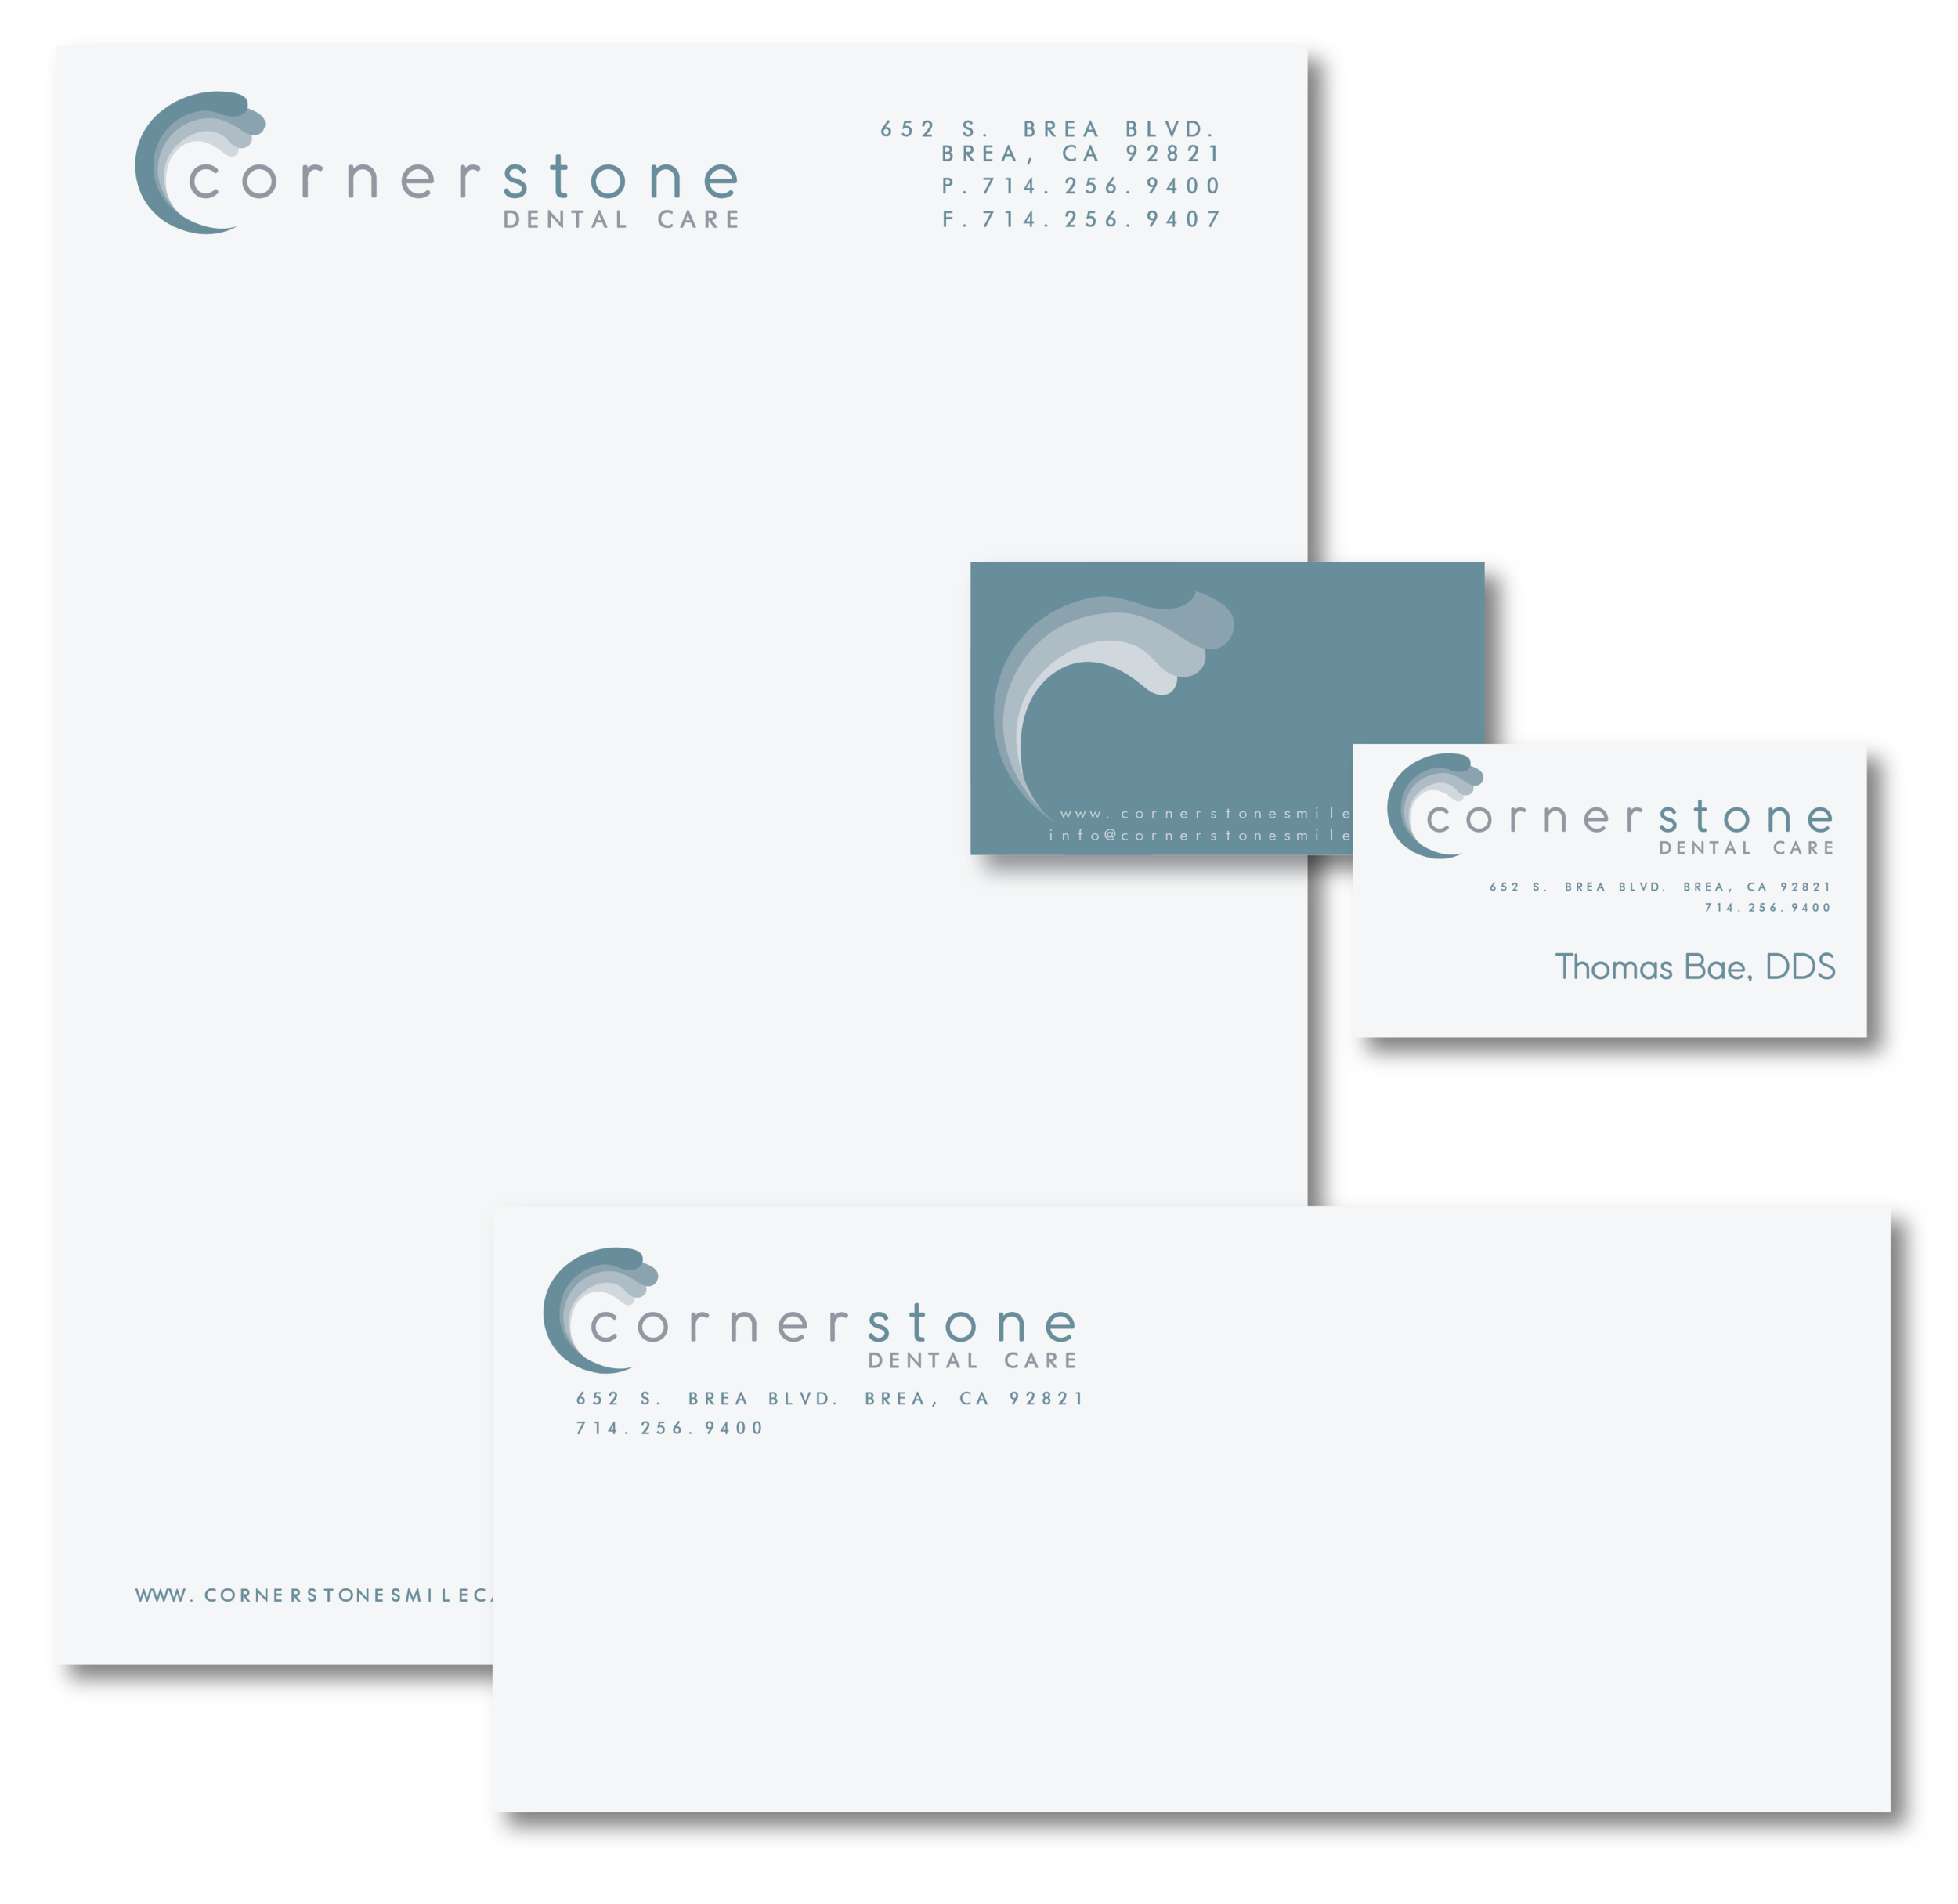 CORNERSTONE_PRINT_MATERIALS_CONCEPT_REV1-02.png